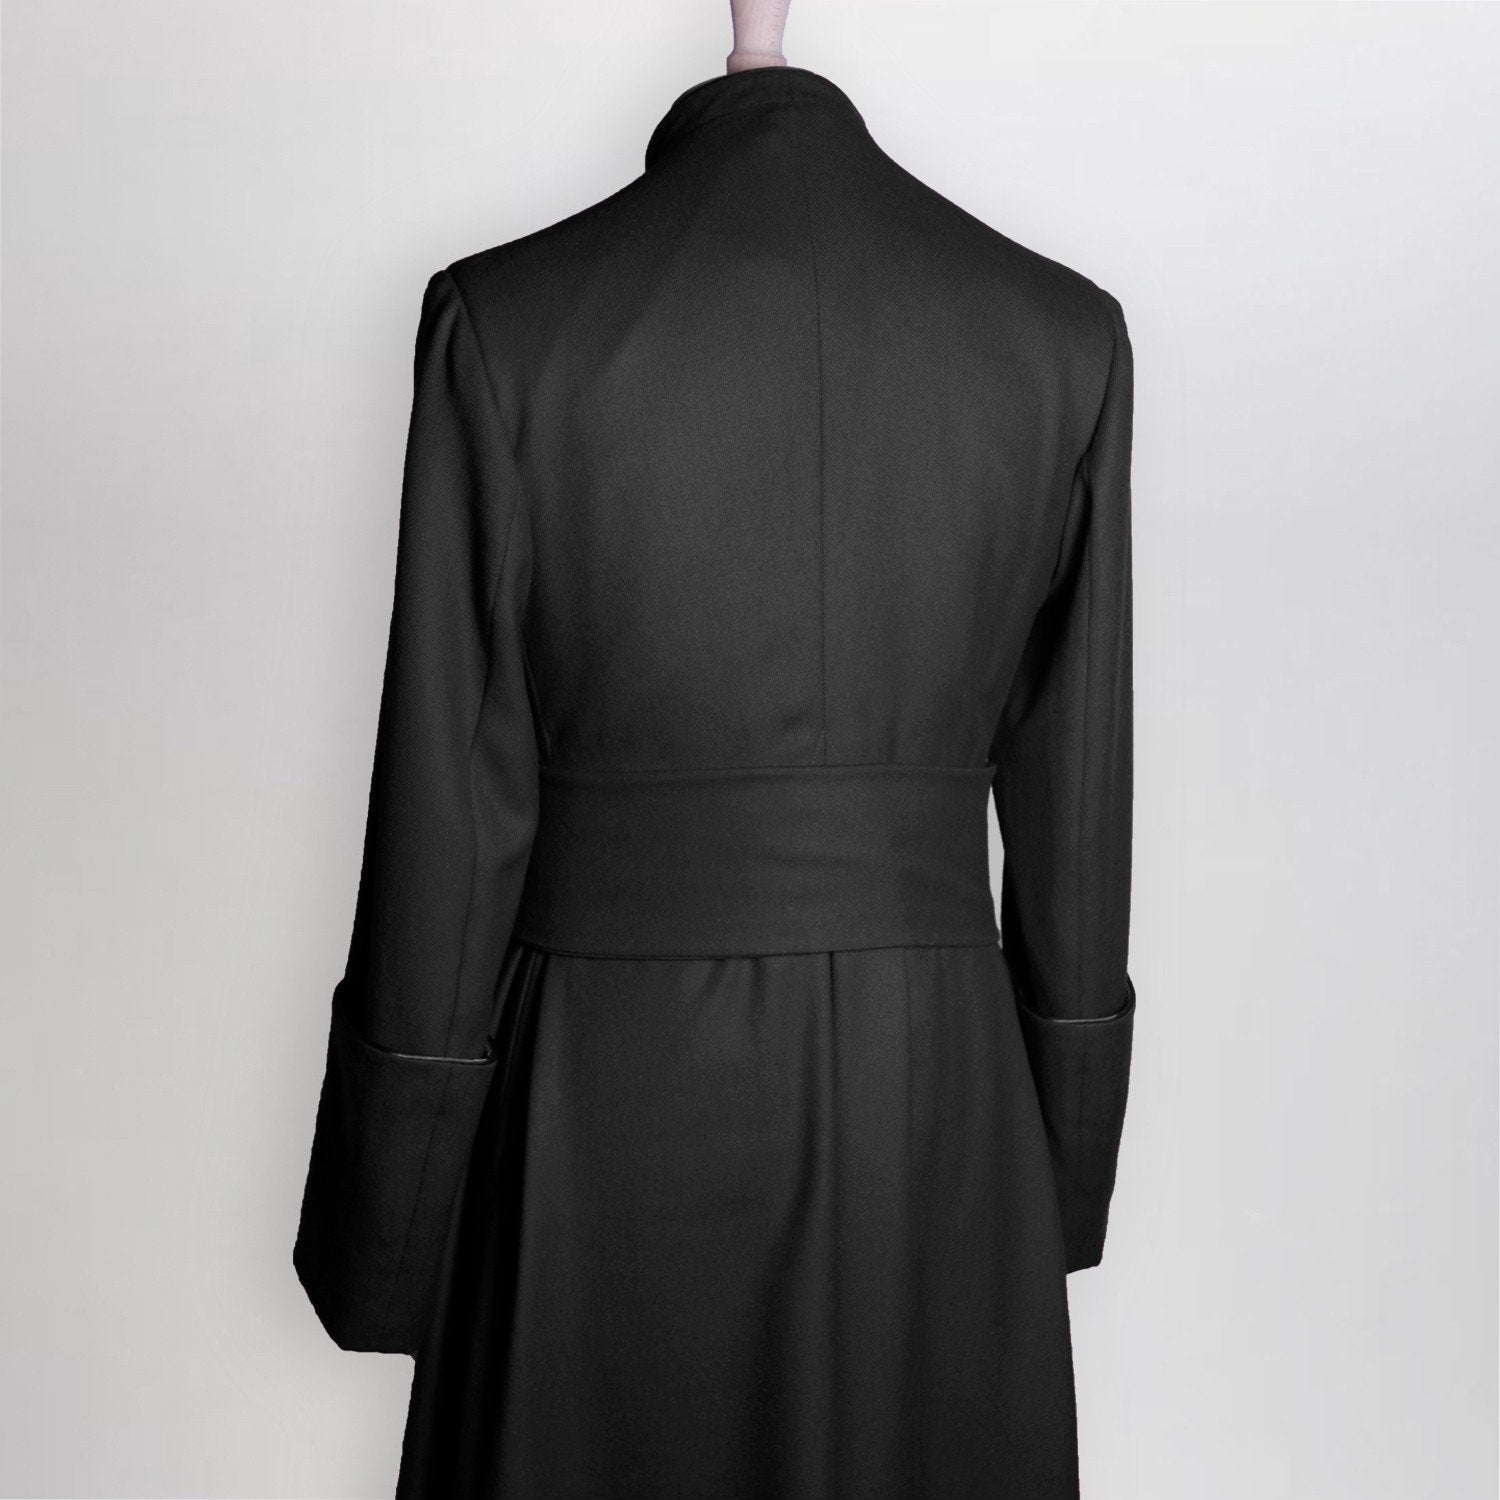 Made to Measure (Bespoke) Single Breasted Minister Cassock - Watts & Co. (international)